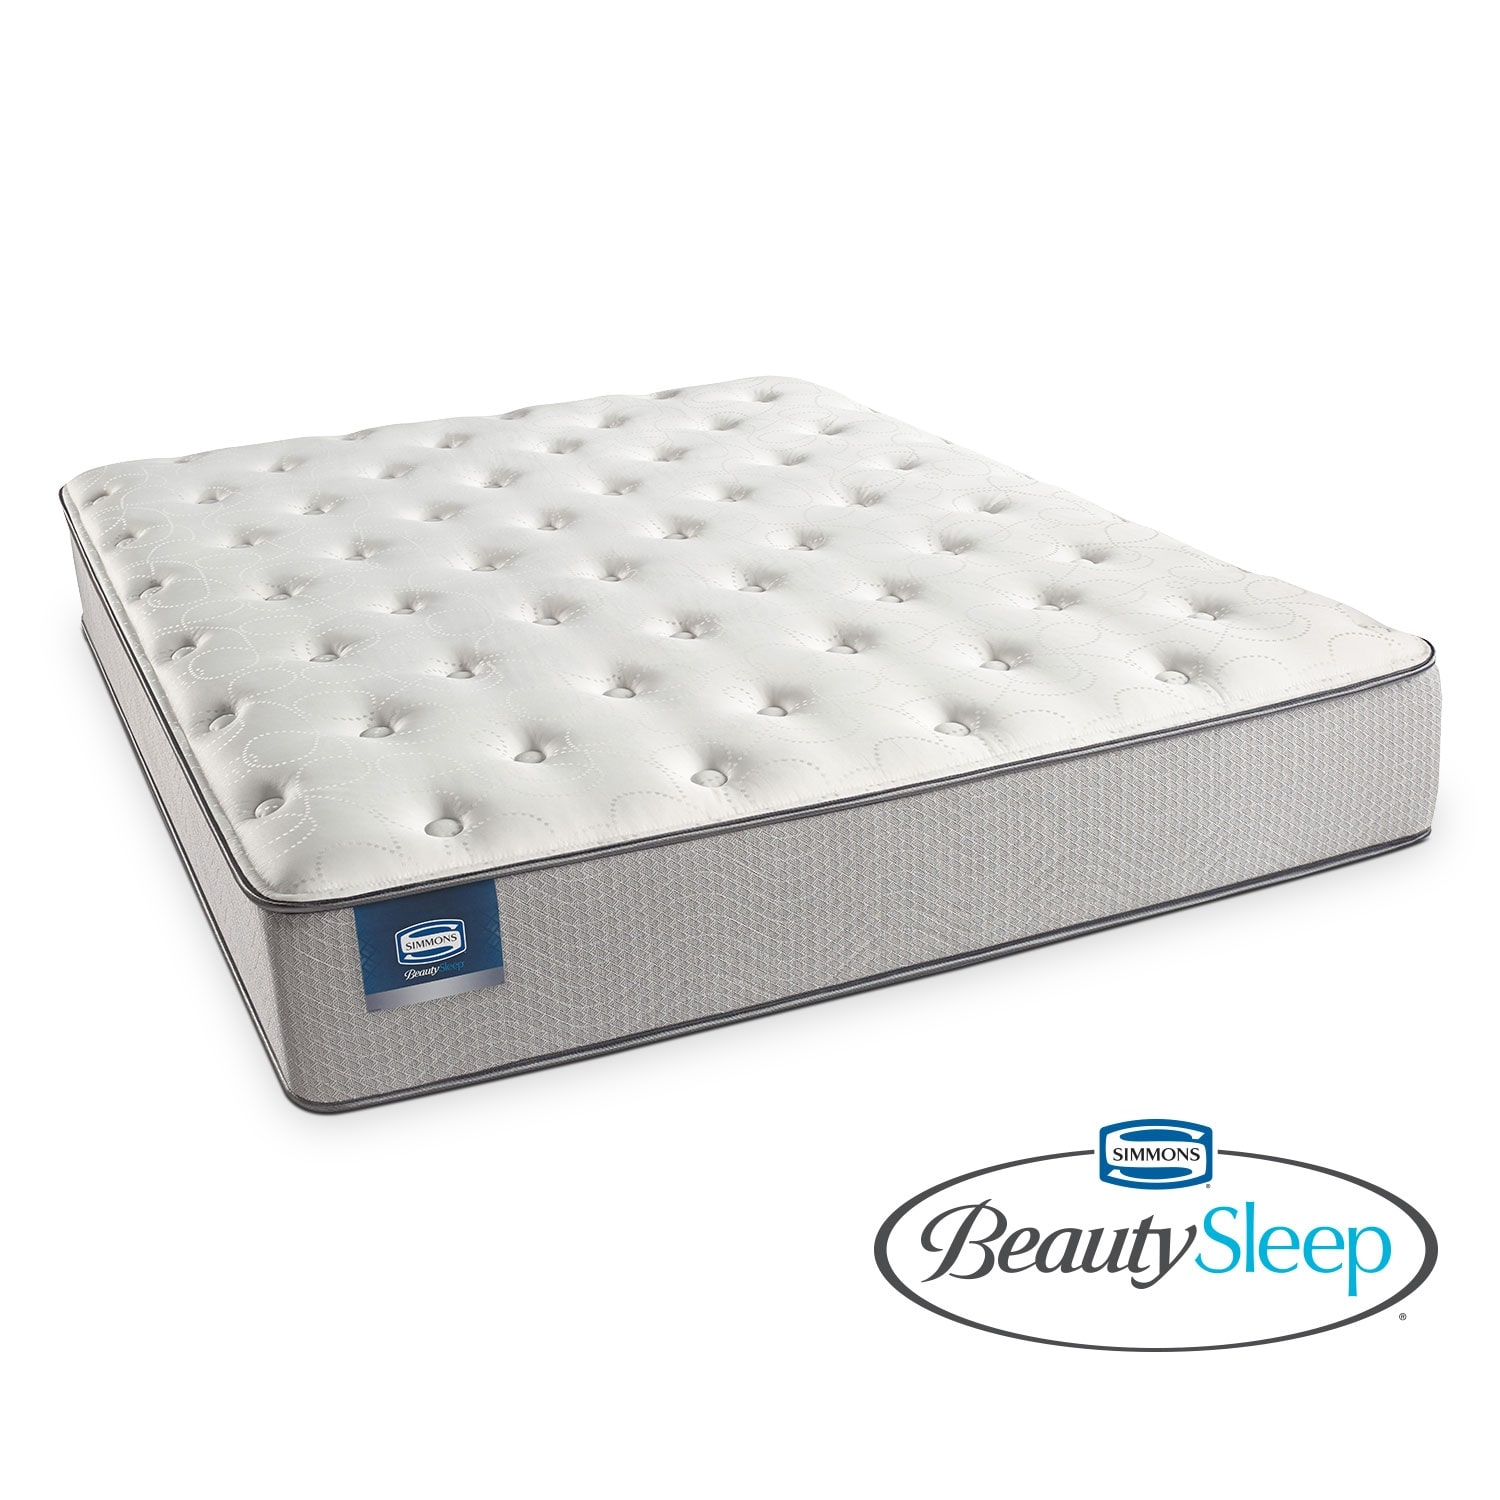 Beautysleep Mattresses Simmons